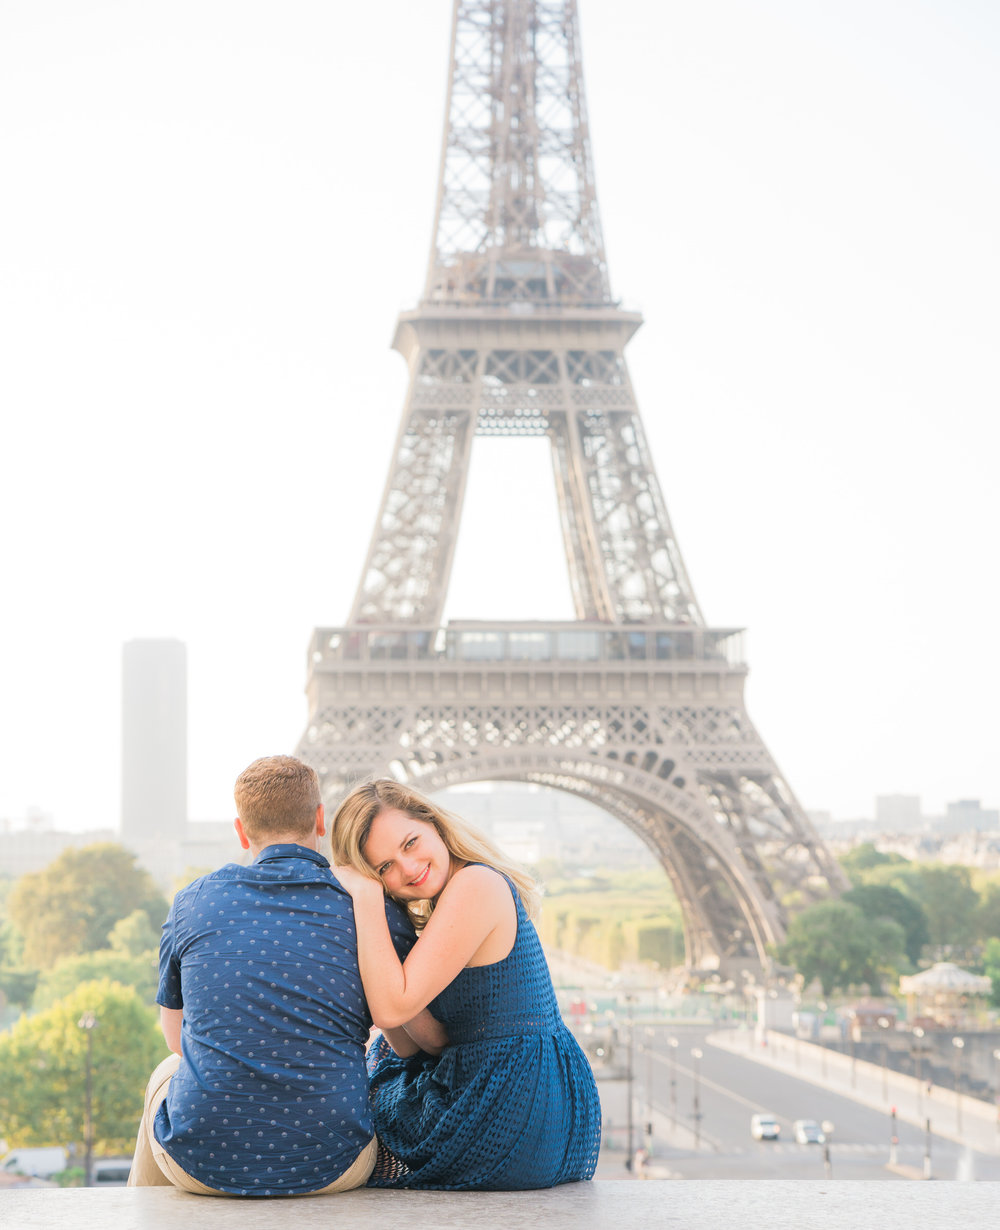 young couple in love photo shoot at trocadero eiffel tower in paris france